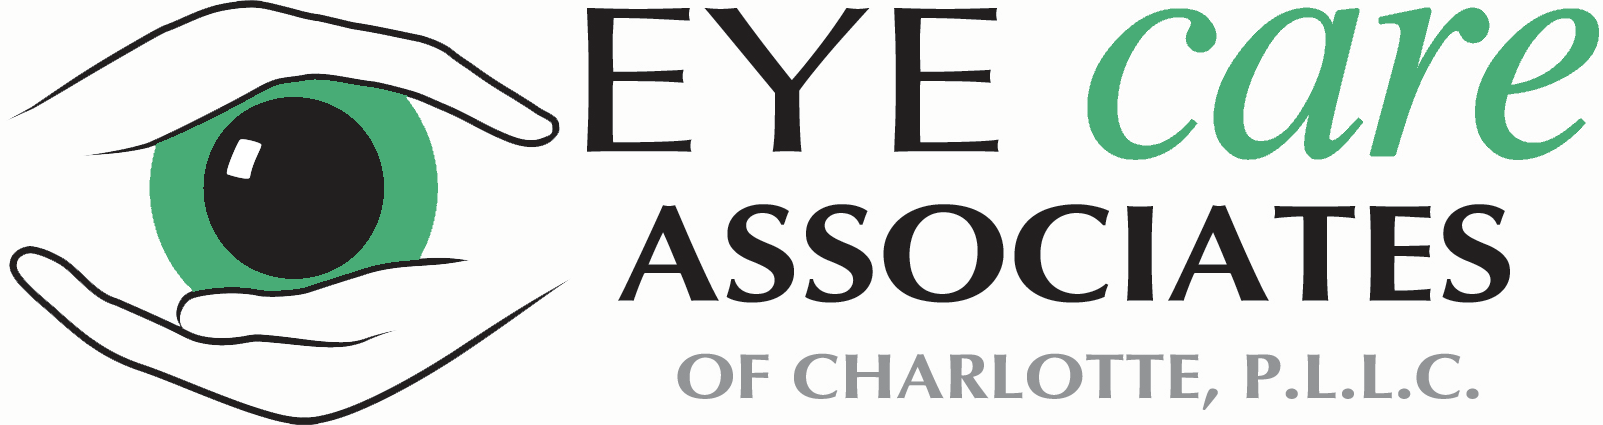 Eye Care Associates of Charlotte, PLLC